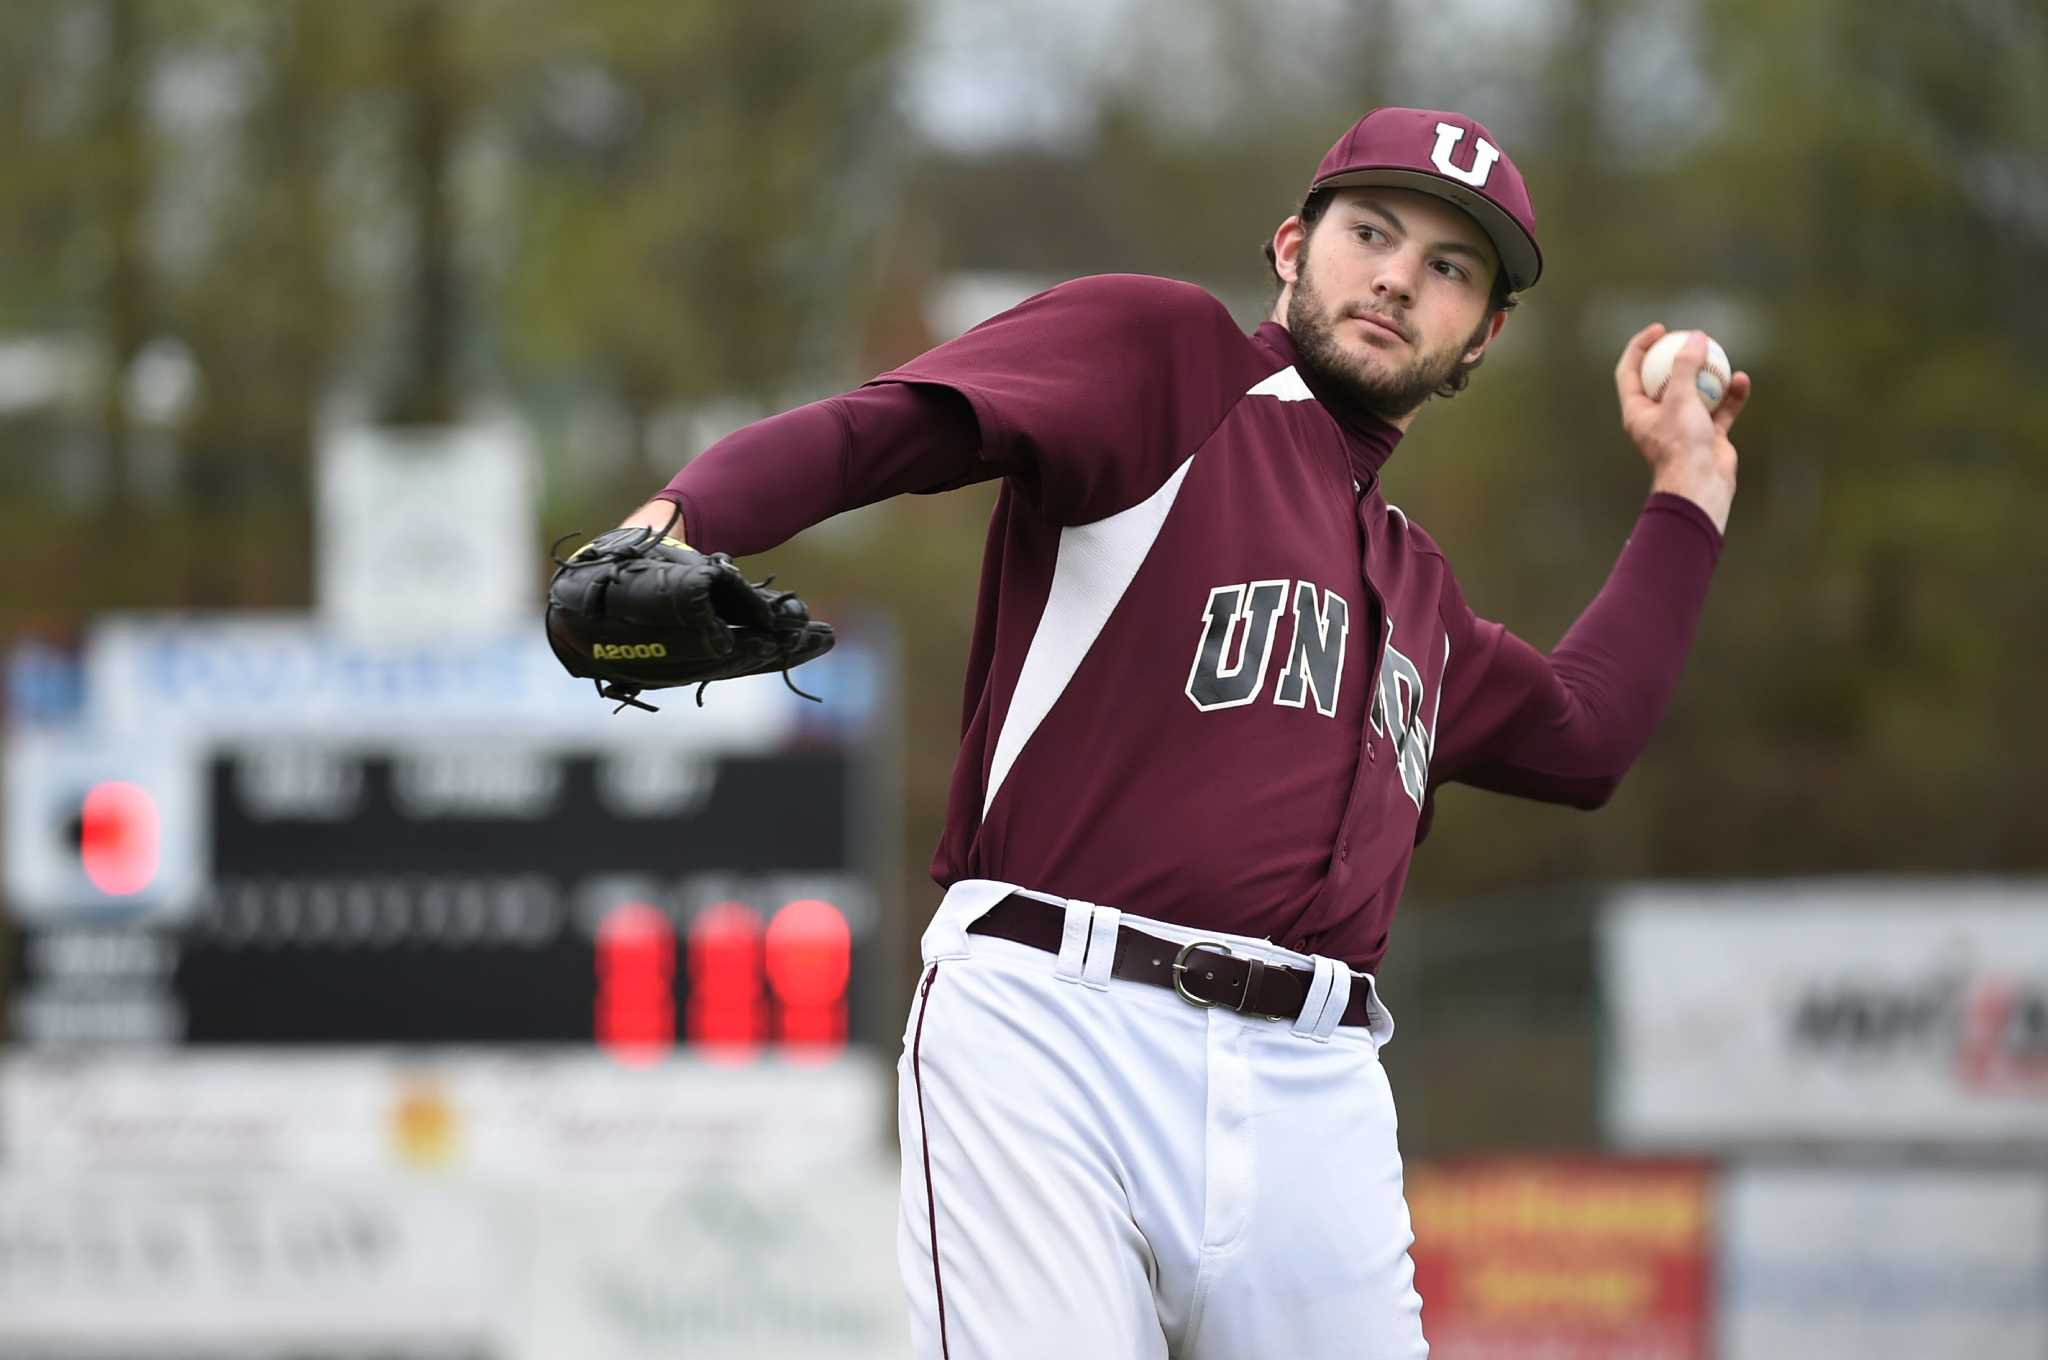 Union College pitcher getting MLB attention